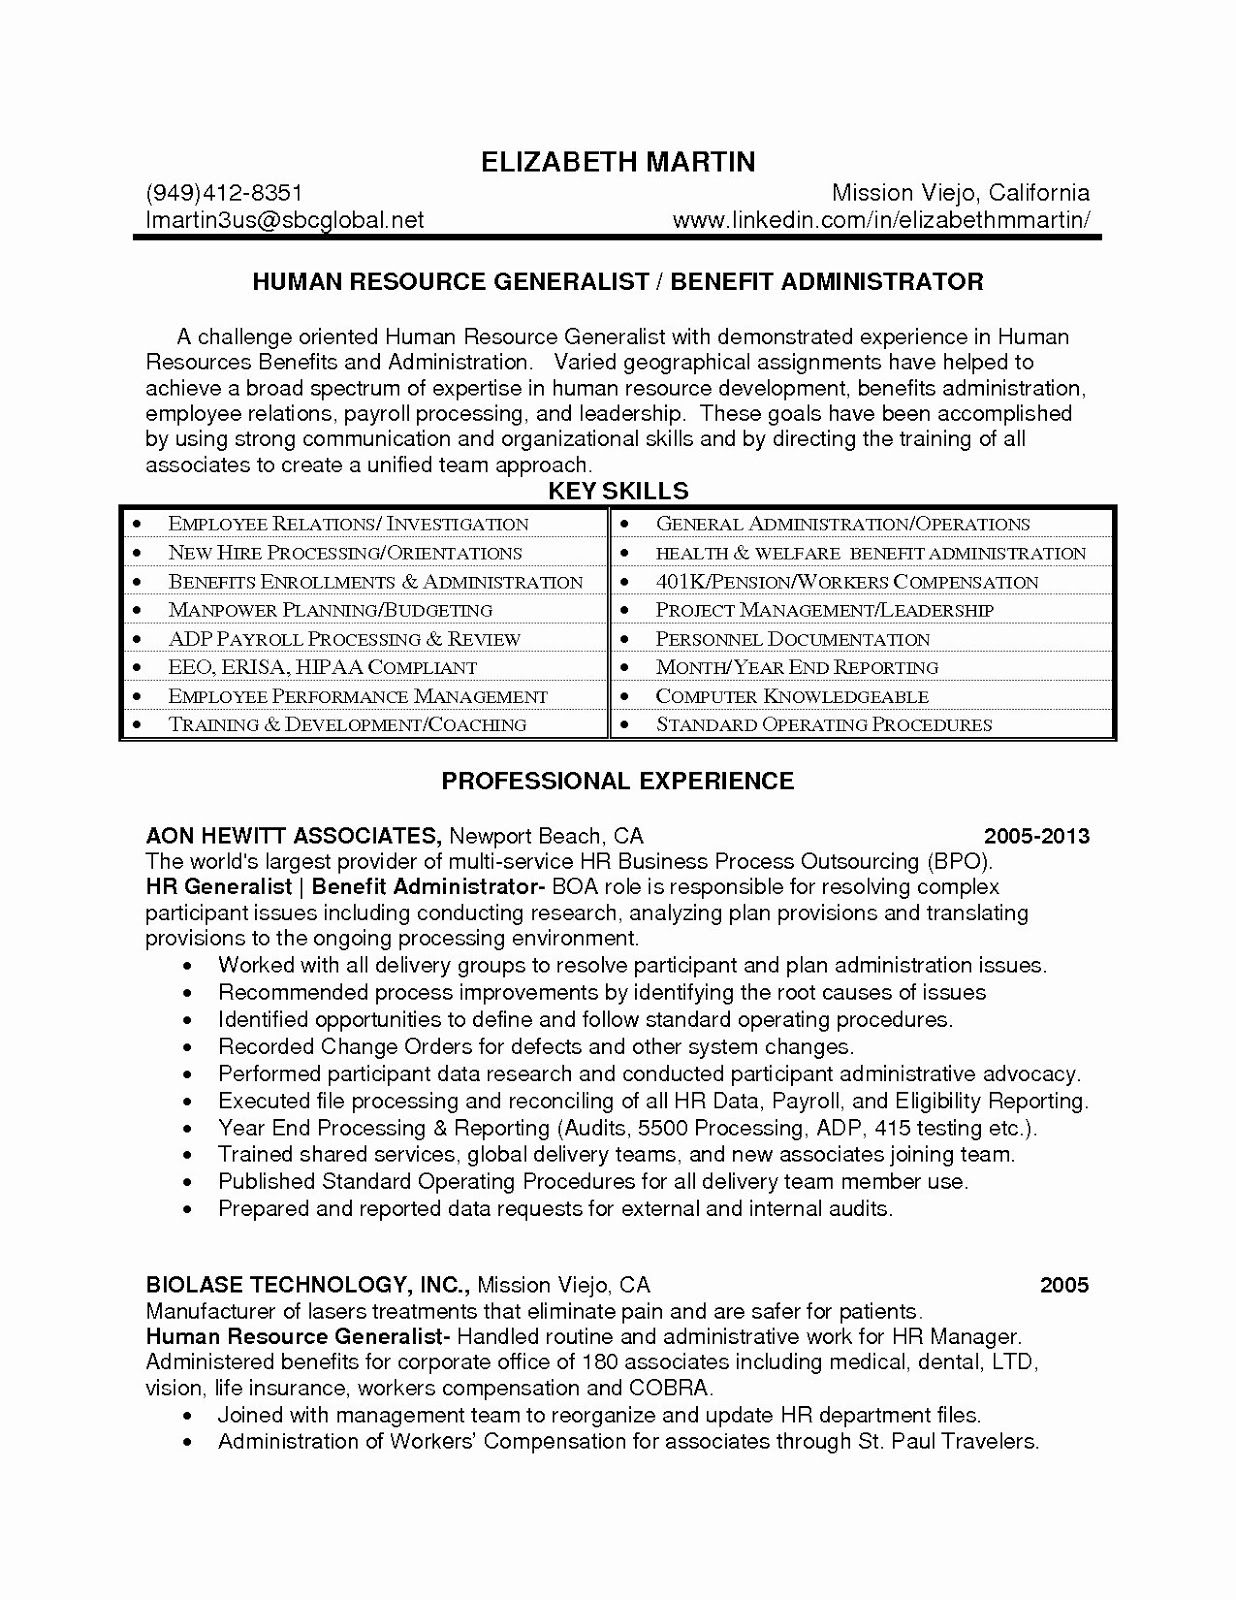 benefits administrator resume objective benefits administrator resume examples benefits administrator resume summary benefits administrator resume cover letter benefits manager resume benefits manager resume objective benefits manager resume cover letter benefits manager resume template benefits administrator cv employee benefits administrator resume